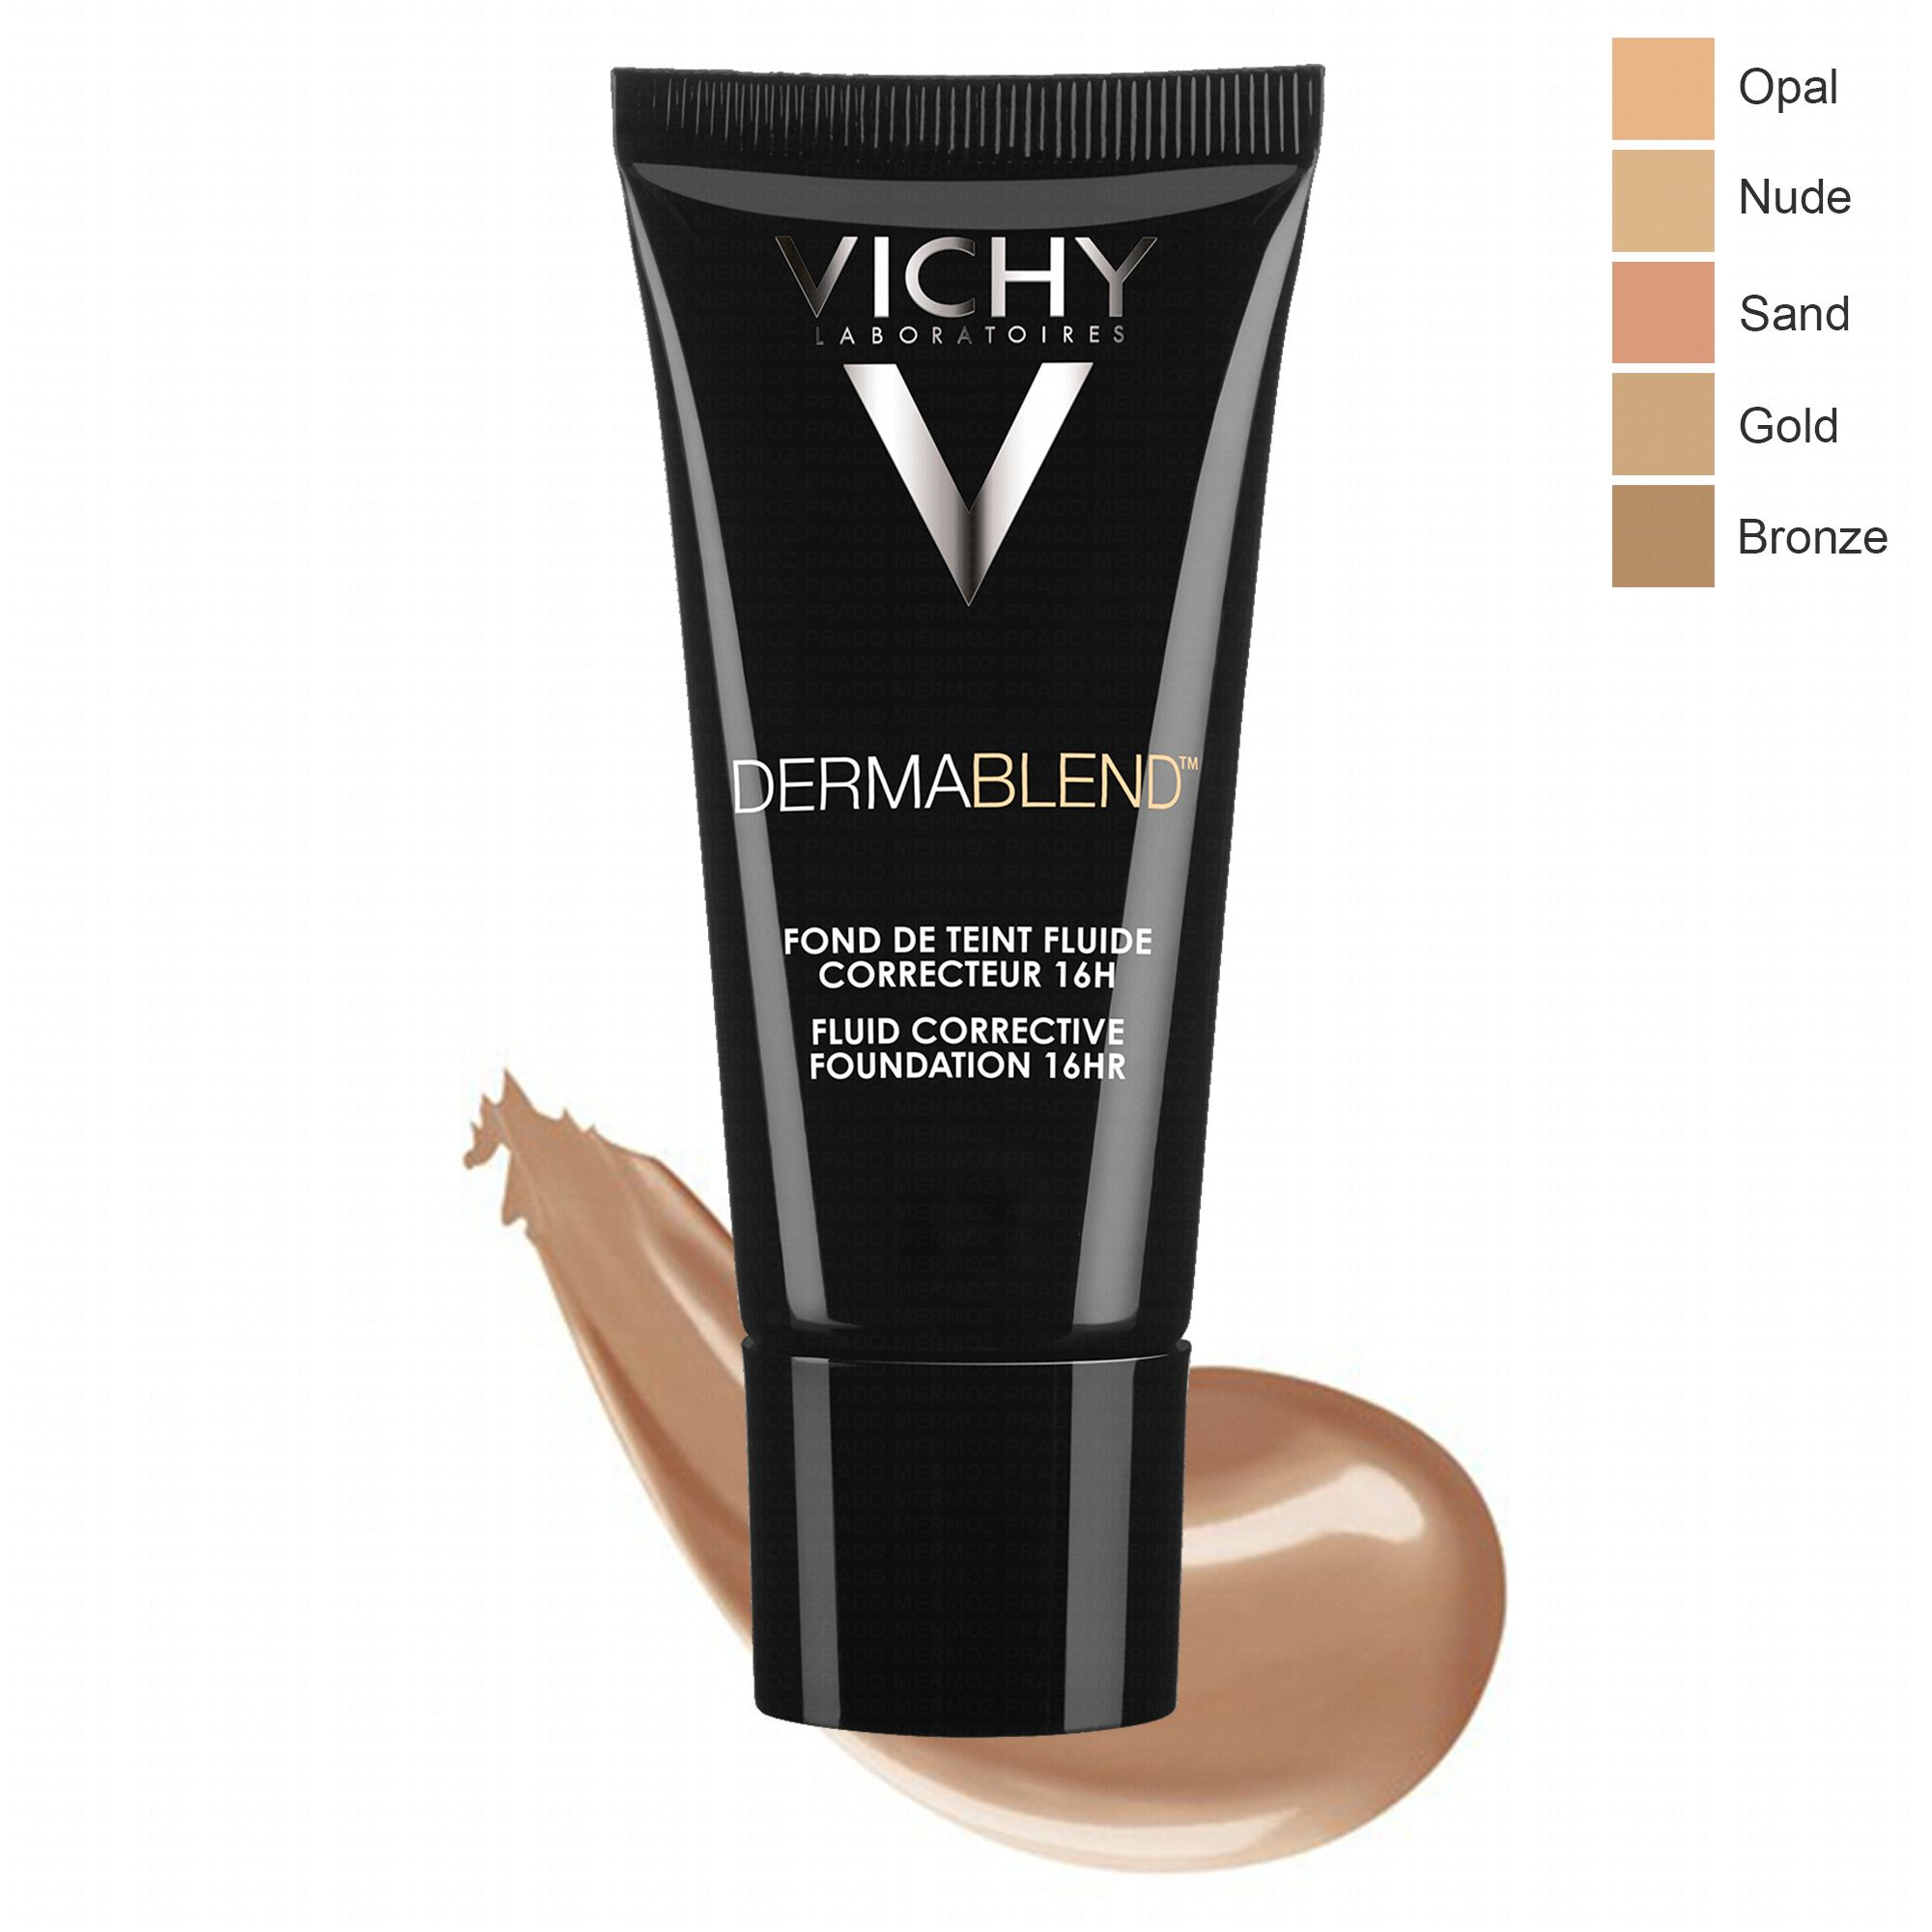 VICHY – DERMABLEND - Fdt Correcteuer Nude 25 ΔΙΟΡΘΩΤΙΚΟ MAKE UP ME EYΠΛΑΣΤΗ ΥΦΗ 30ml, SPF35